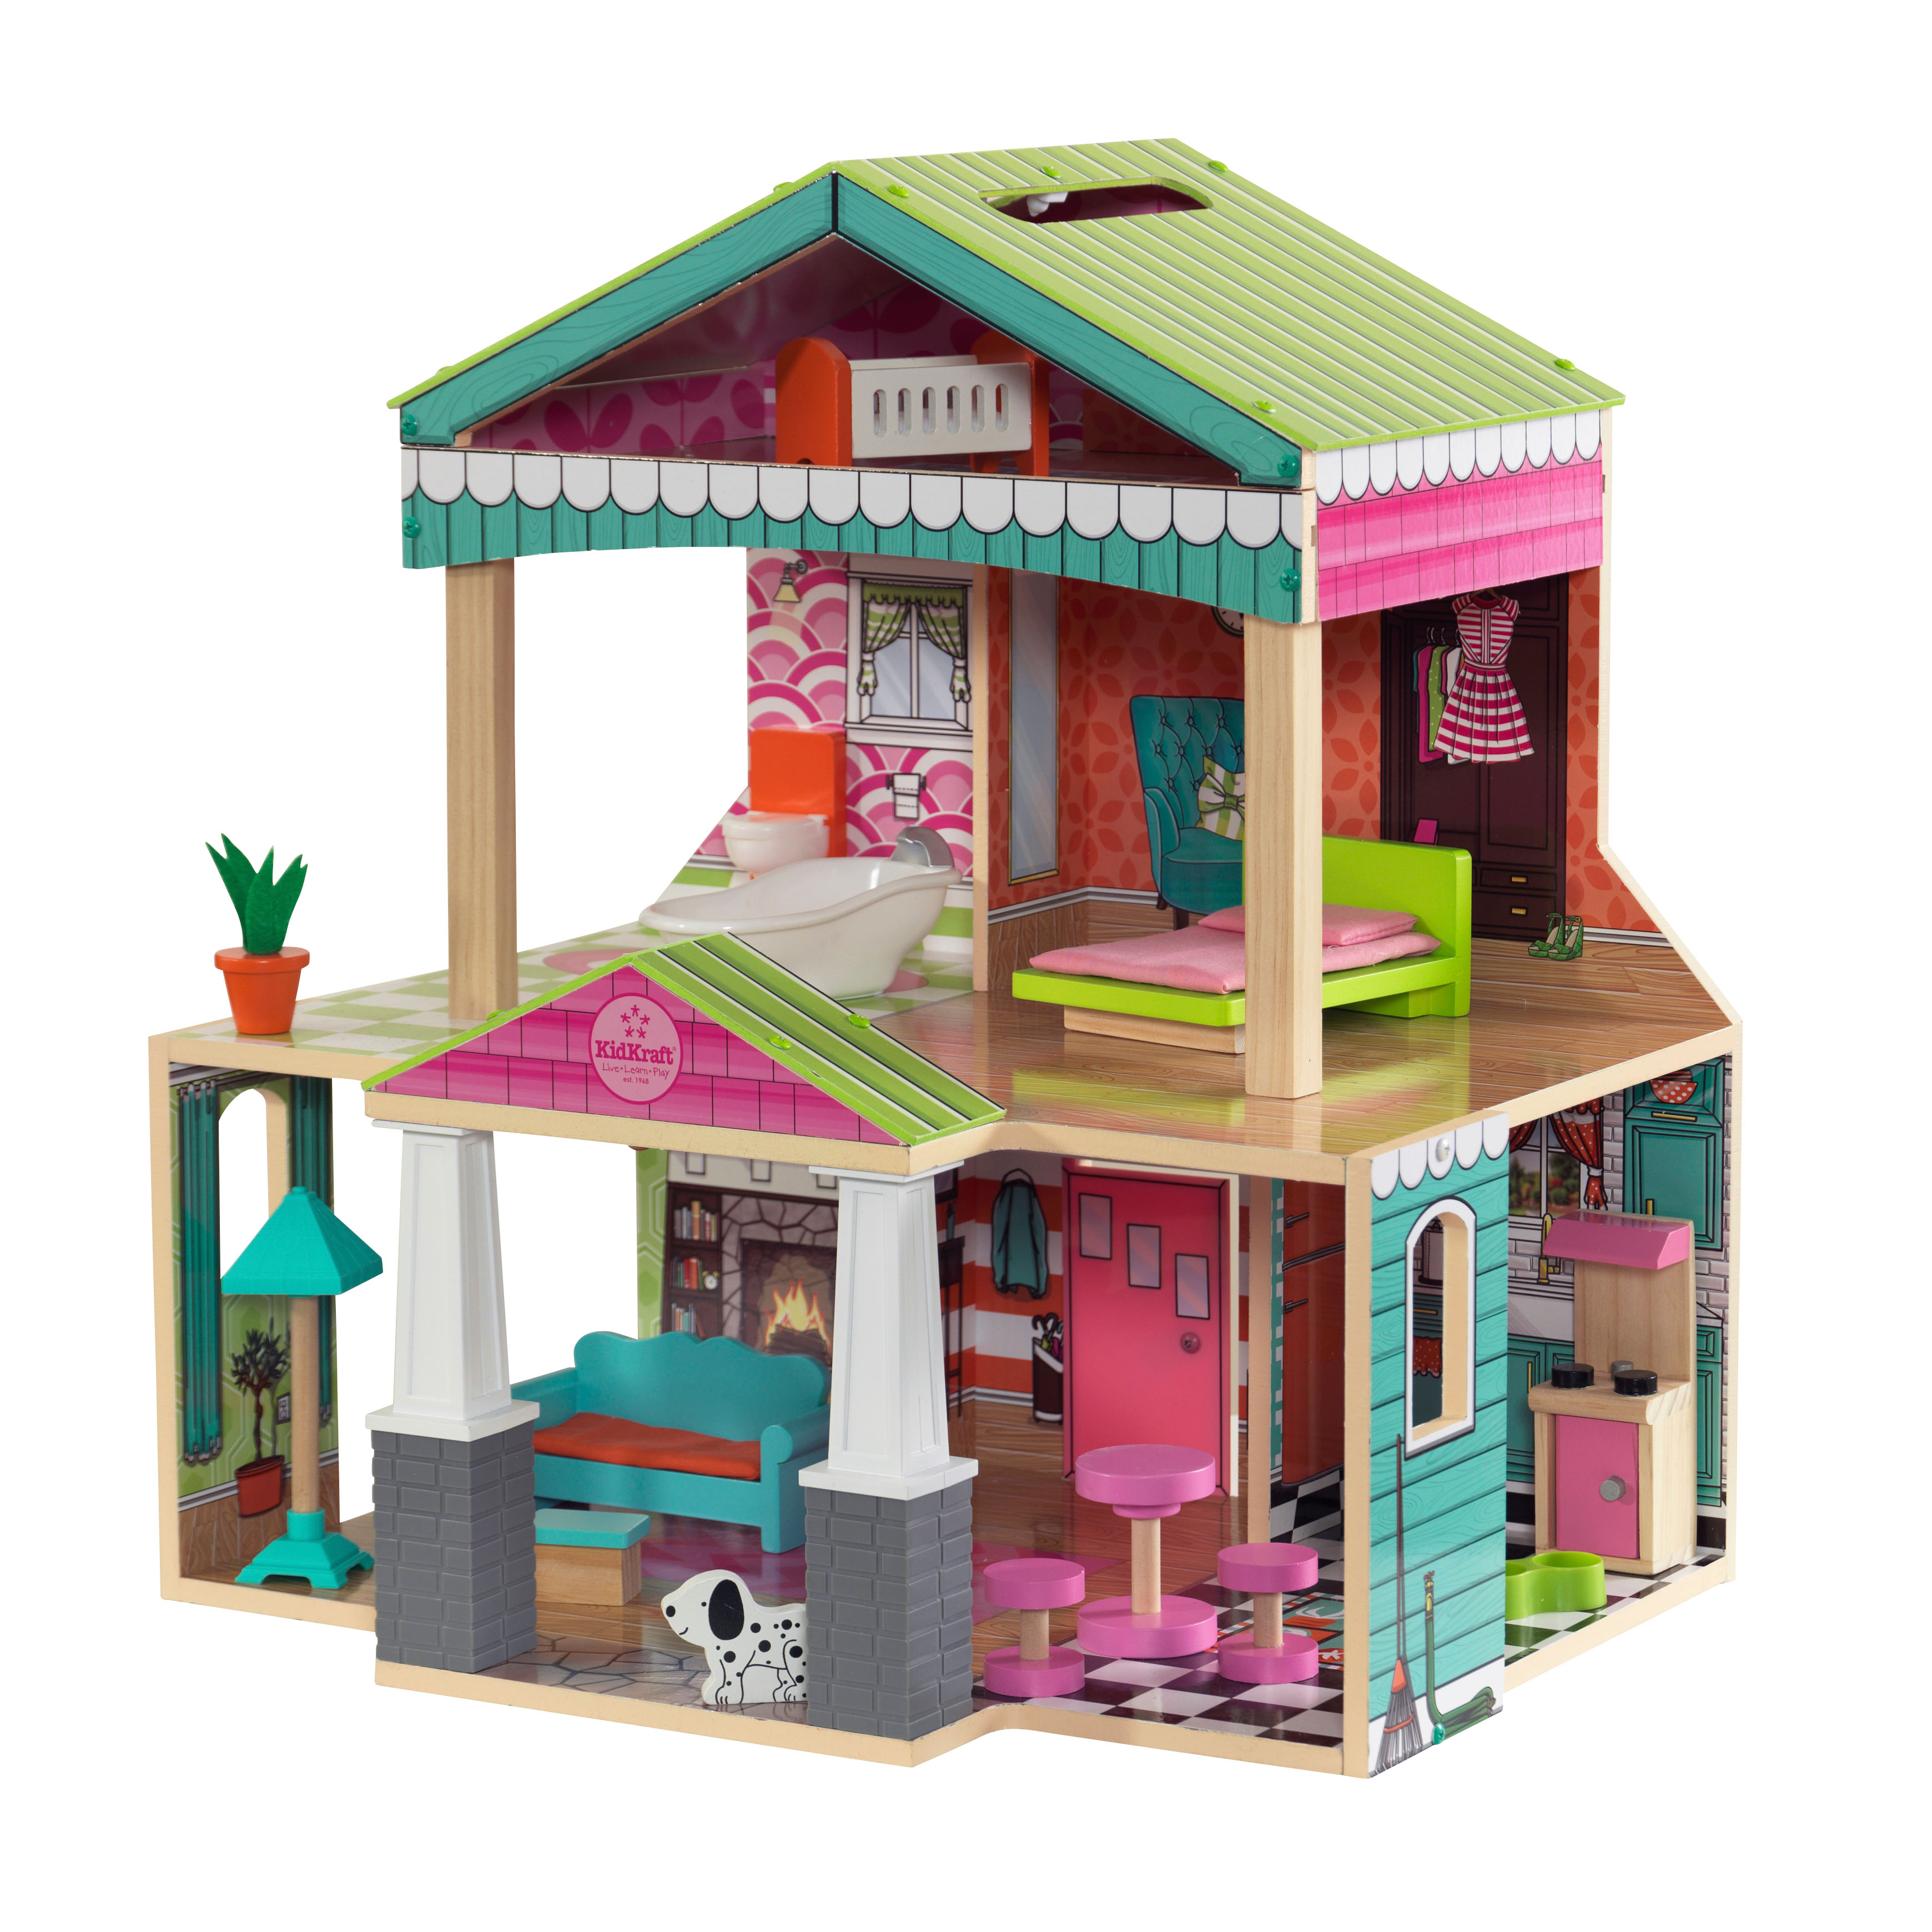 KidKraft Pacific Bungalow Dollhouse with 14 accessories included by KidKraft